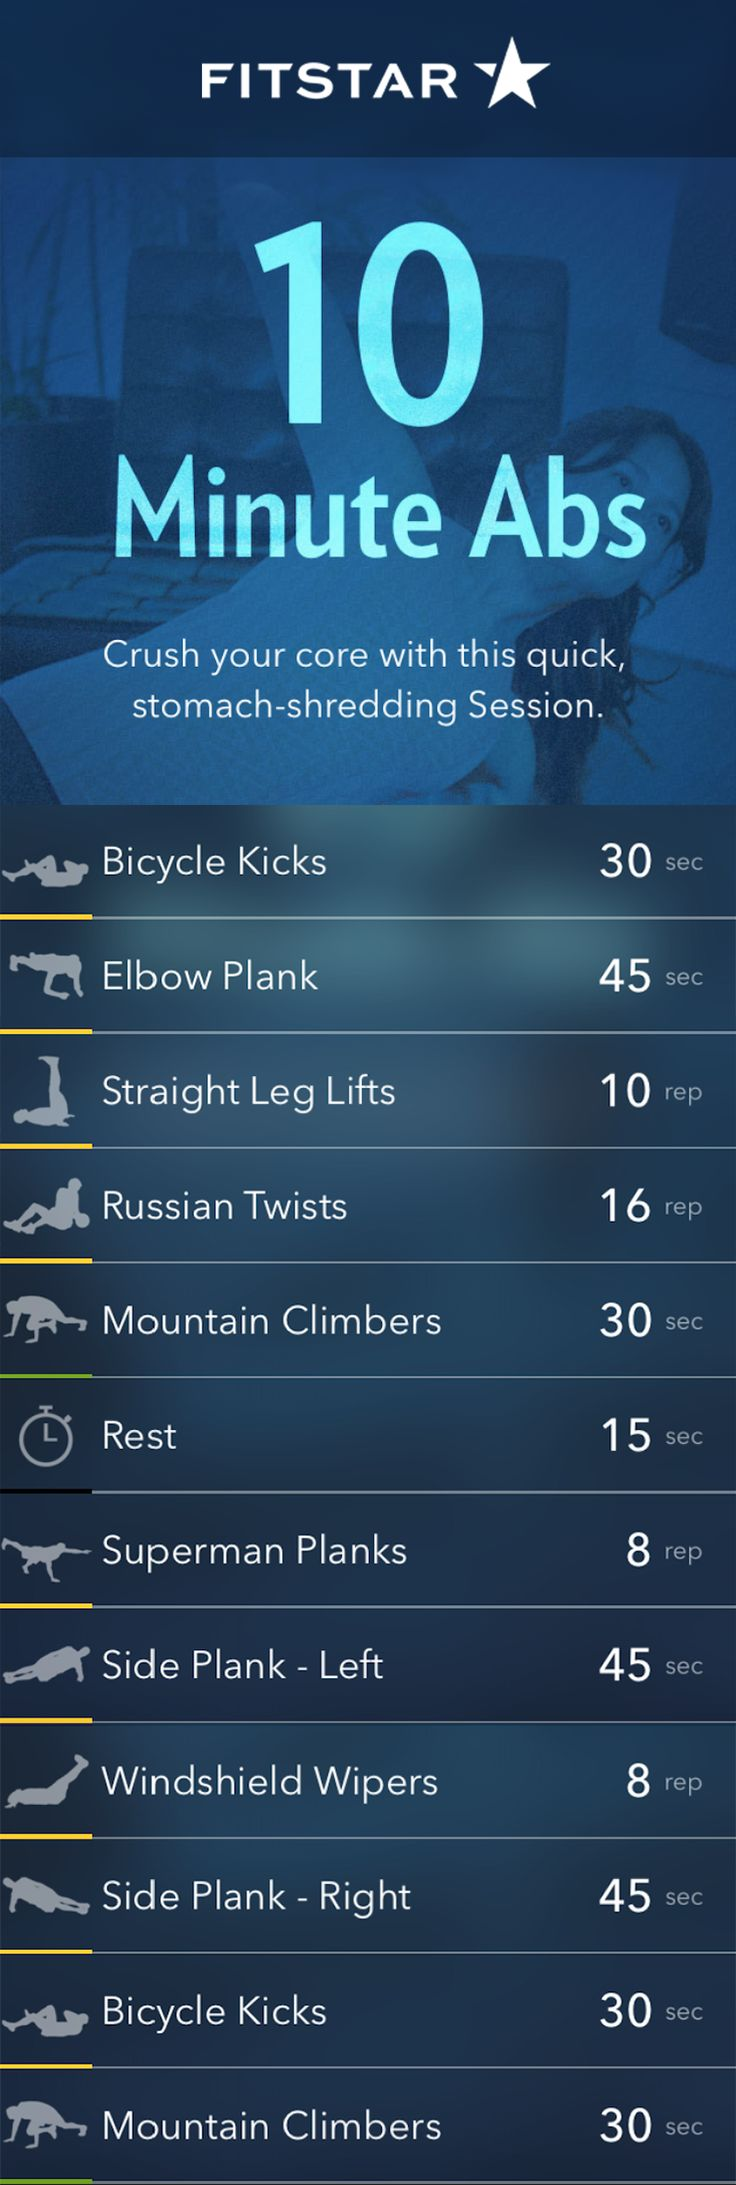 Fitstar 10 Minute Abs #absworkout